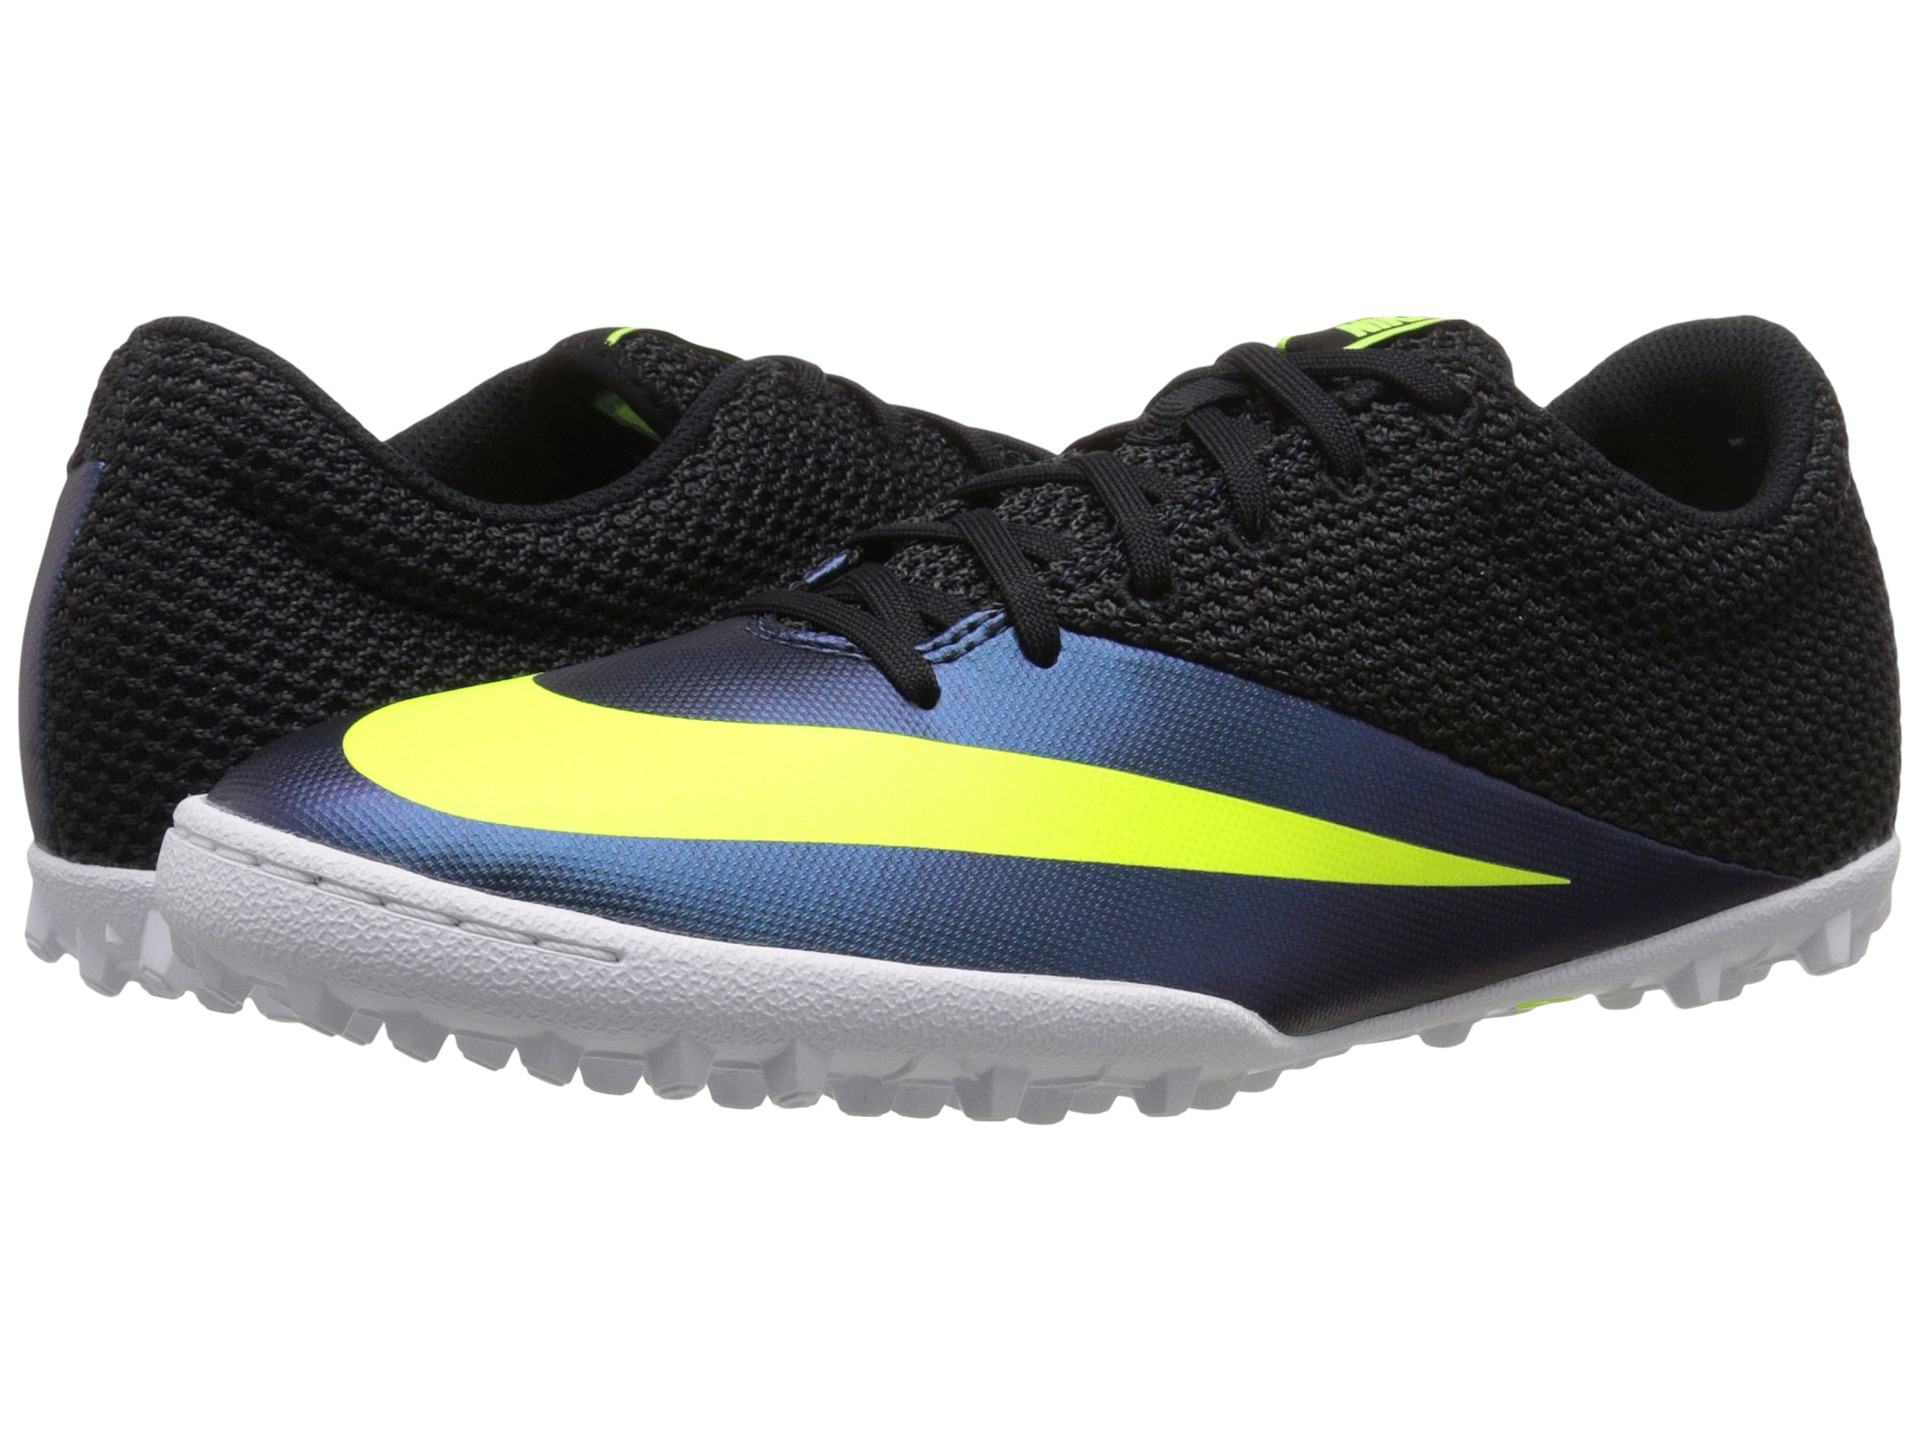 928a1788c577 Lyst - Nike Mercurialx Pro Tf in Blue for Men